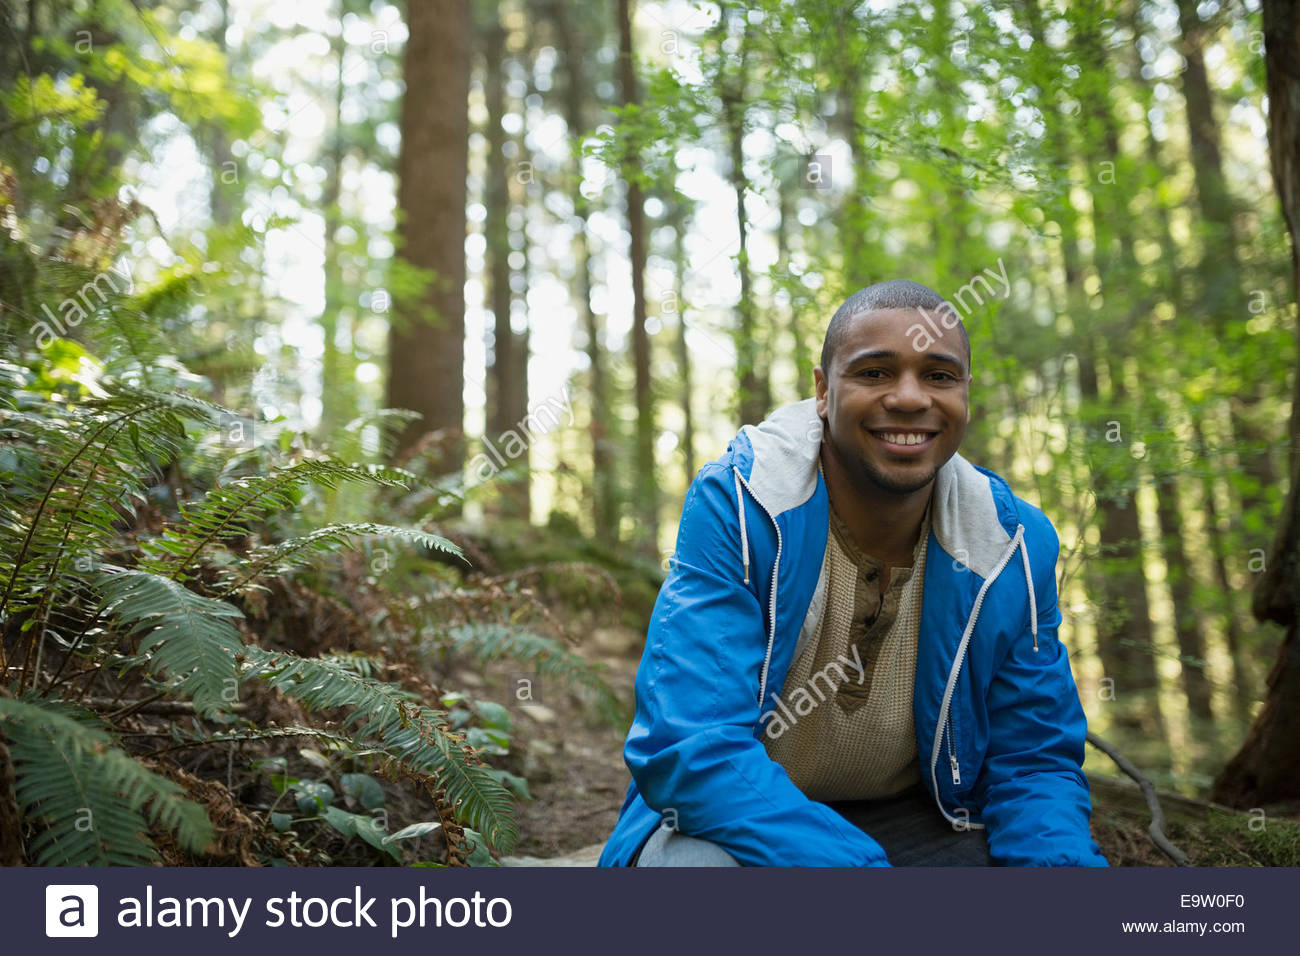 Portrait of young man smiling in woods Photo Stock